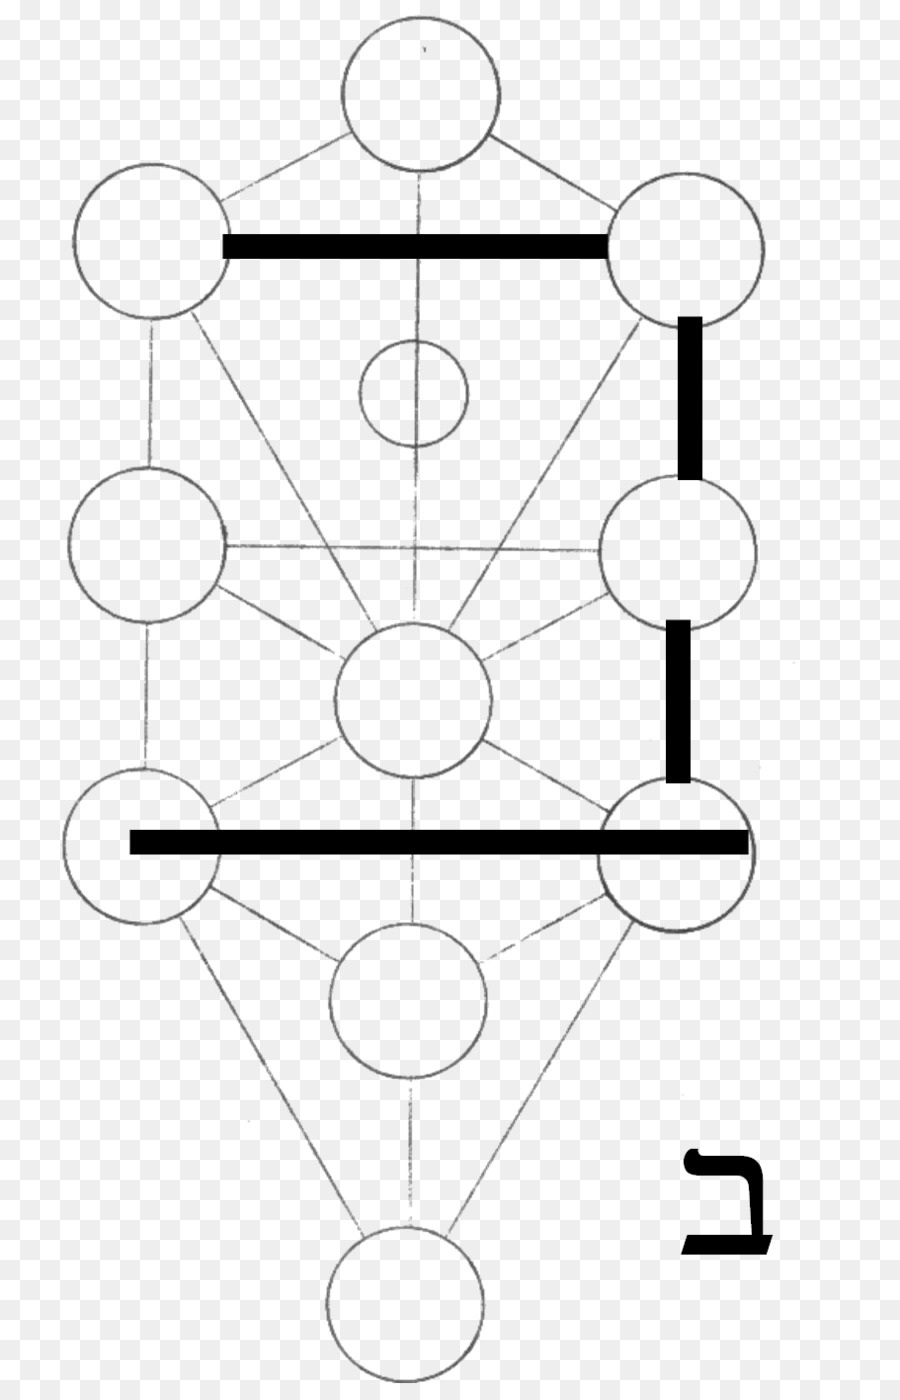 Tree Of Life Png Download 911 1401 Free Transparent Kabbalah Png Download Cleanpng Kisspng The tree of life is a diagram used in various mystical traditions. clean png